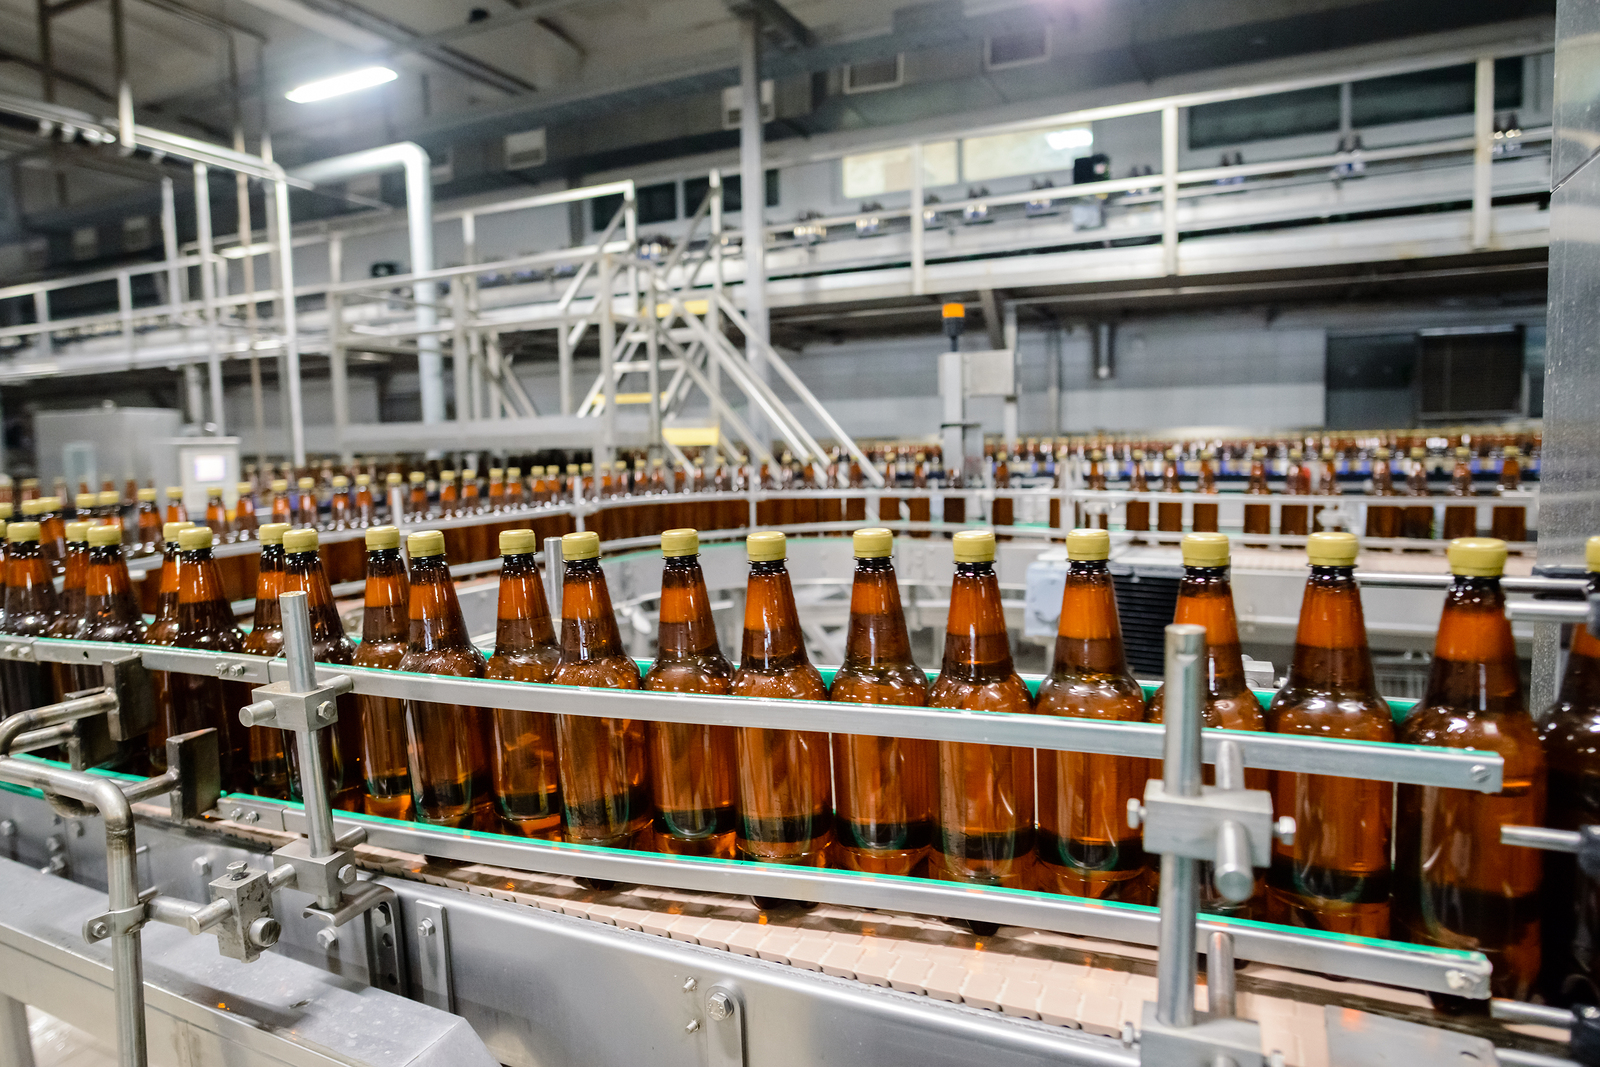 Australian Lion Beer is packaged on bottling conveyor